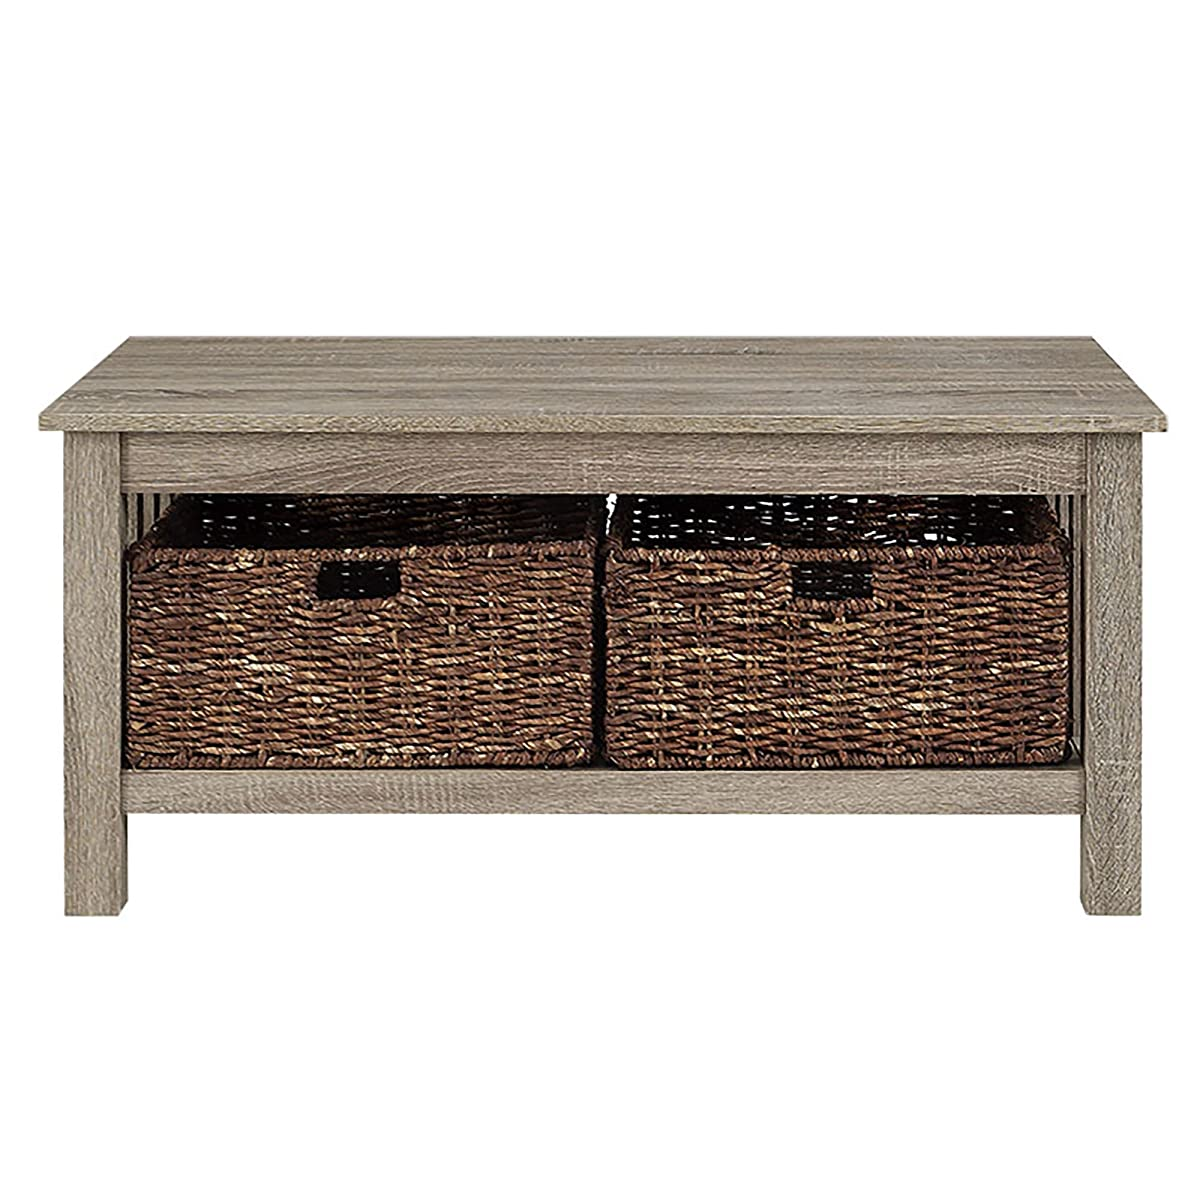 """WE Furniture 40"""" Wood Storage Coffee Table with Totes - Driftwood"""